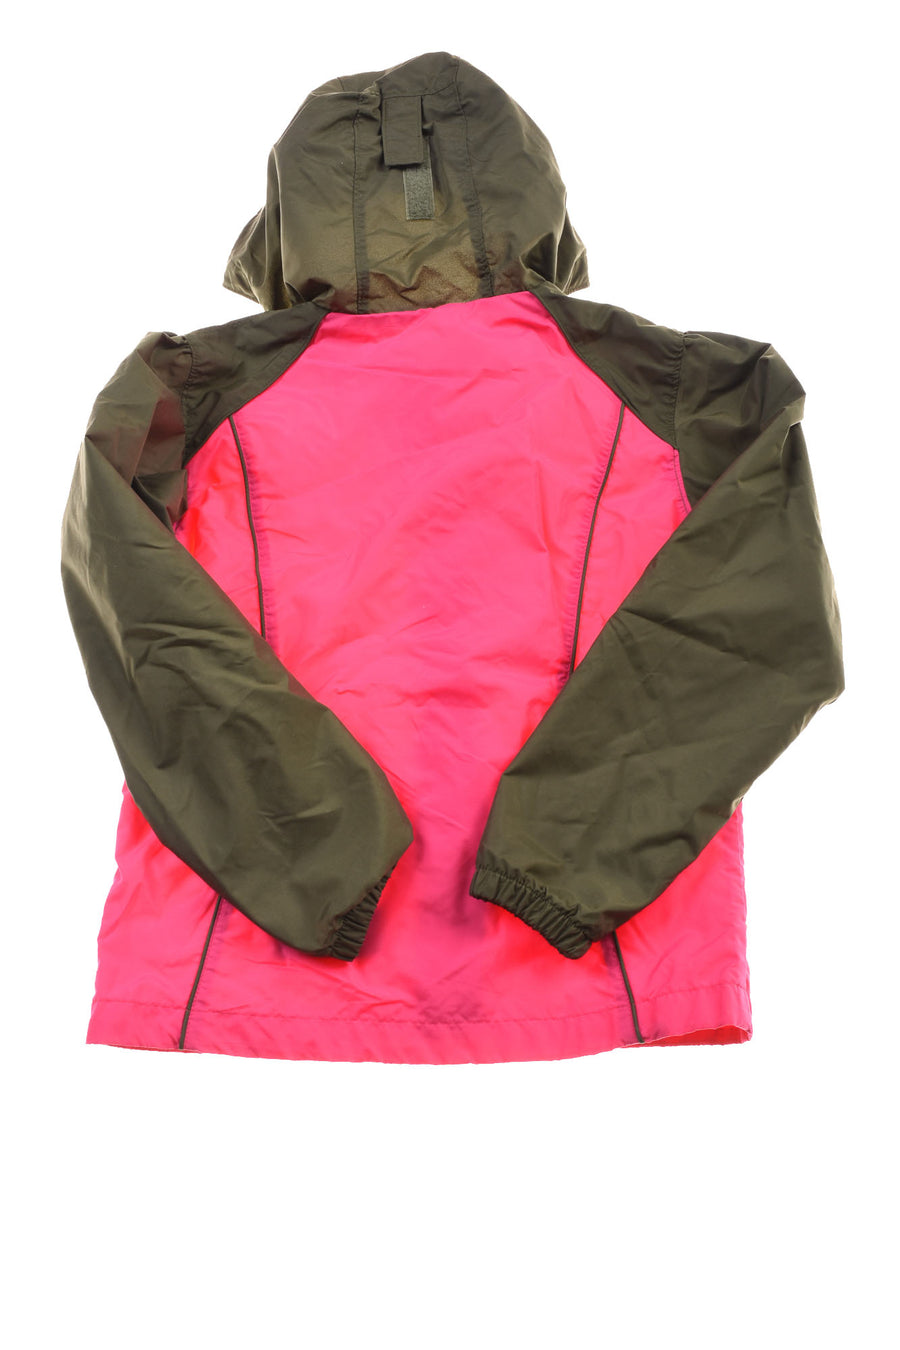 USED Columbia Girl's Jacket 10/12 Green & Pink